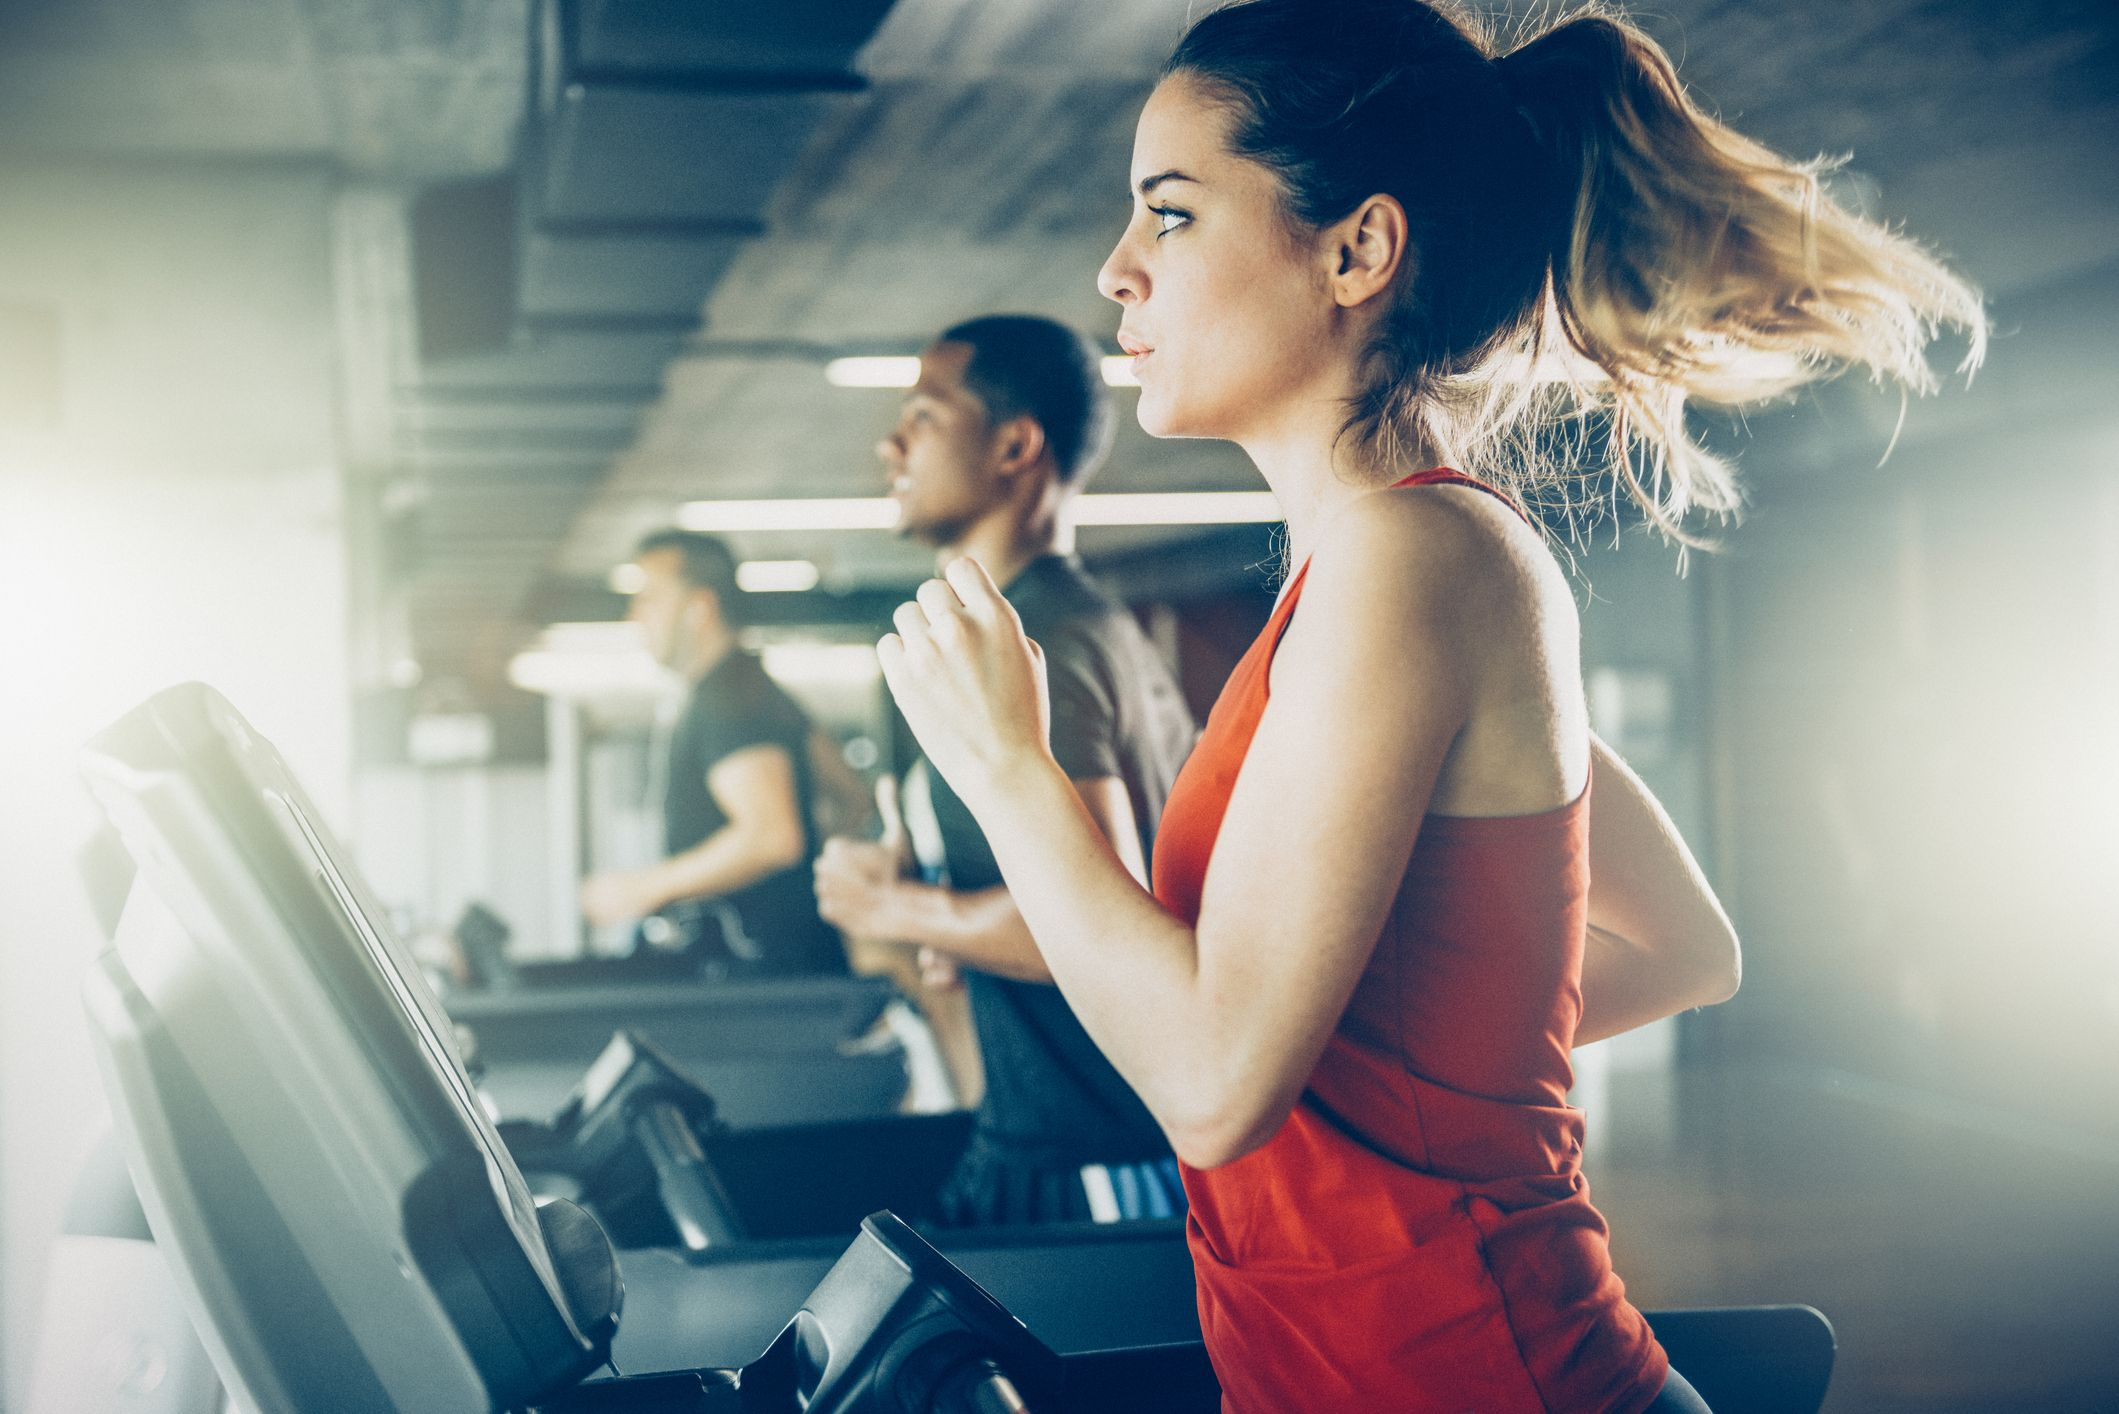 People working out on treadmill at a gym